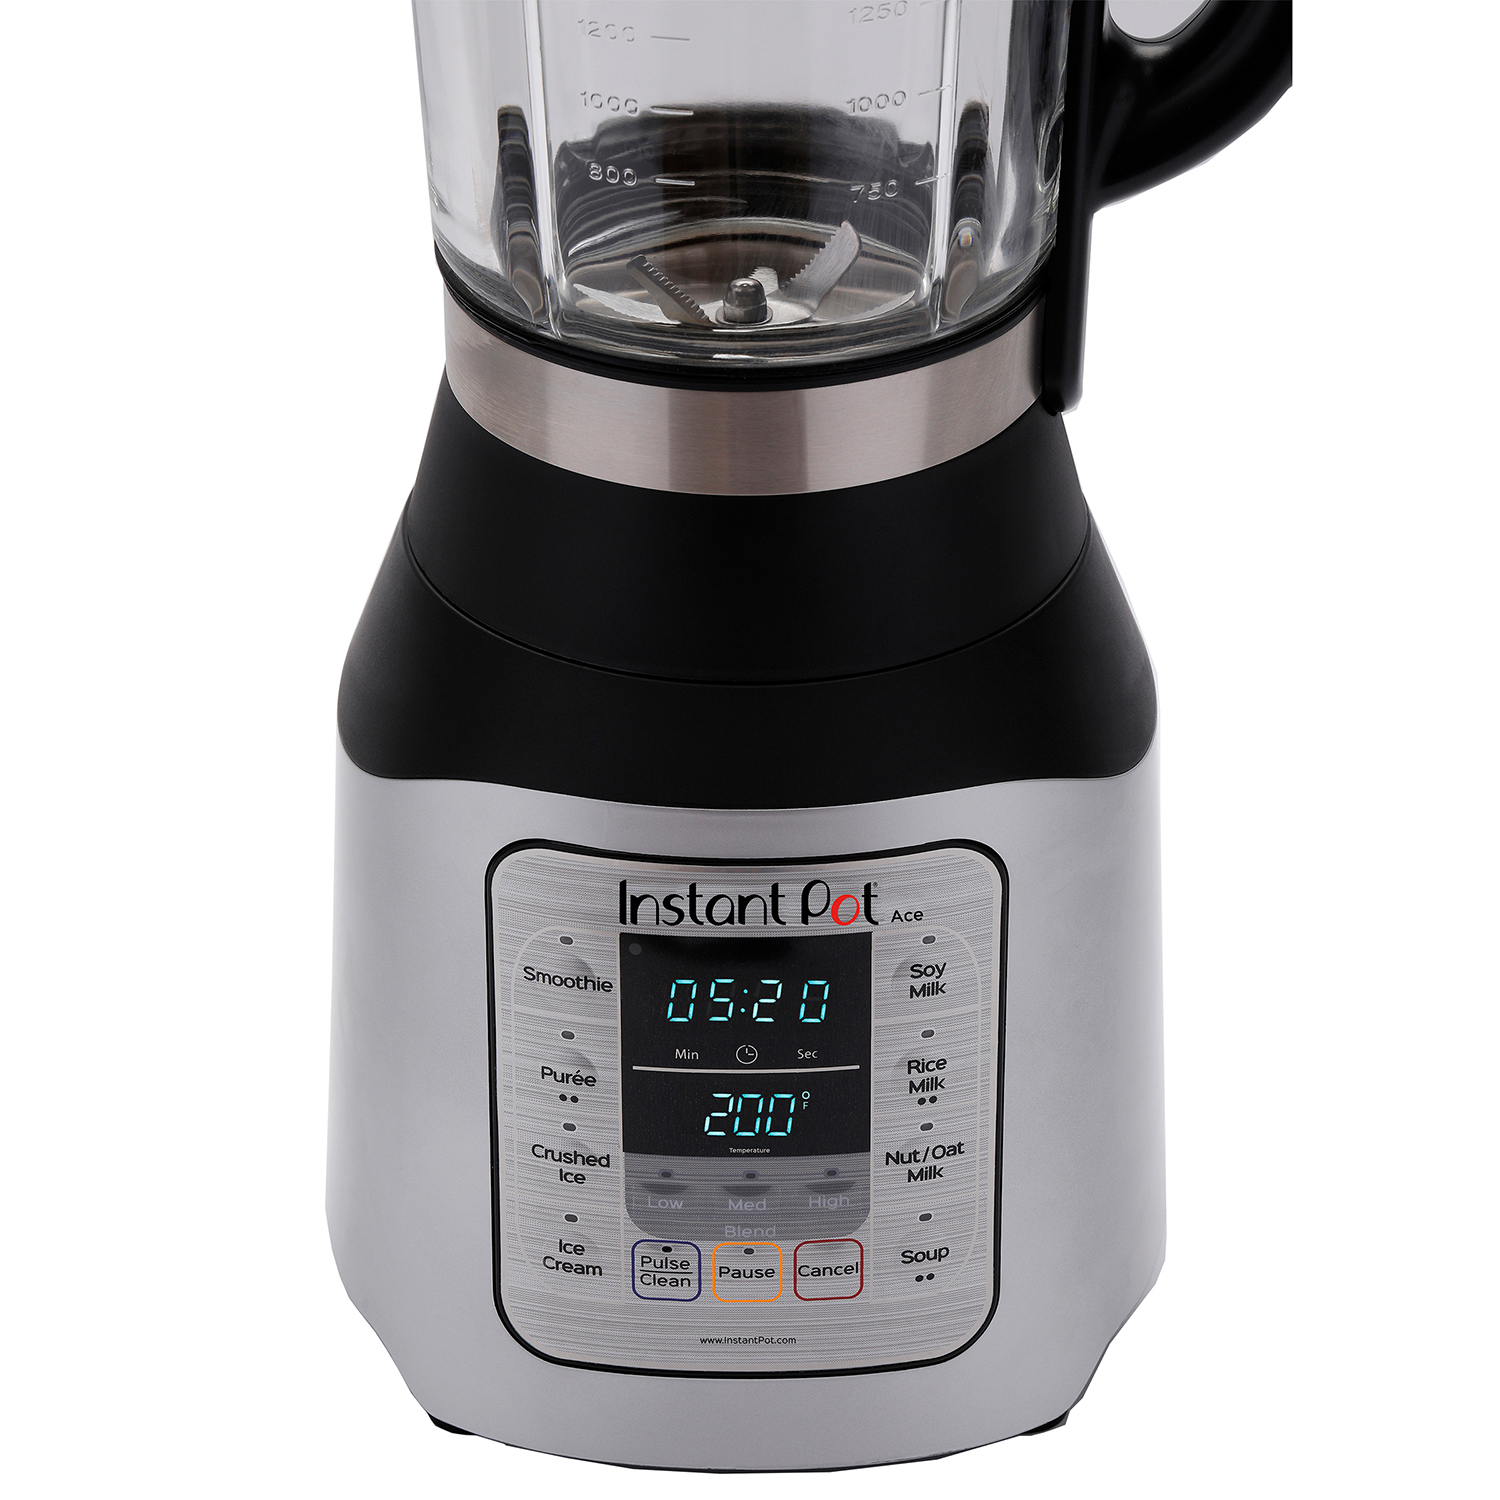 The New InstantPot Ace Blender Review